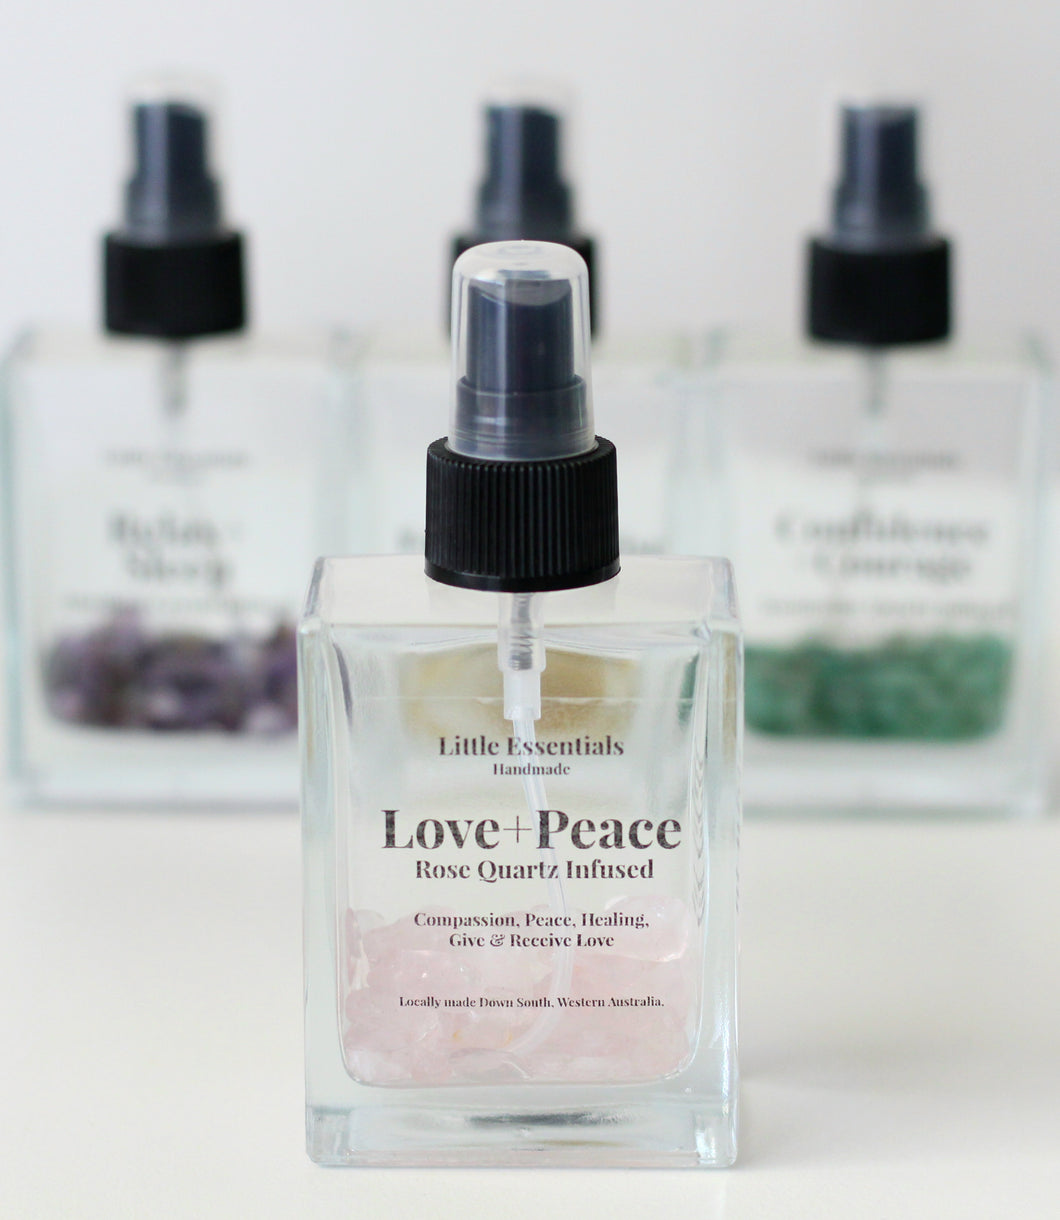 Love and Peace rose Quartz infused spray mist